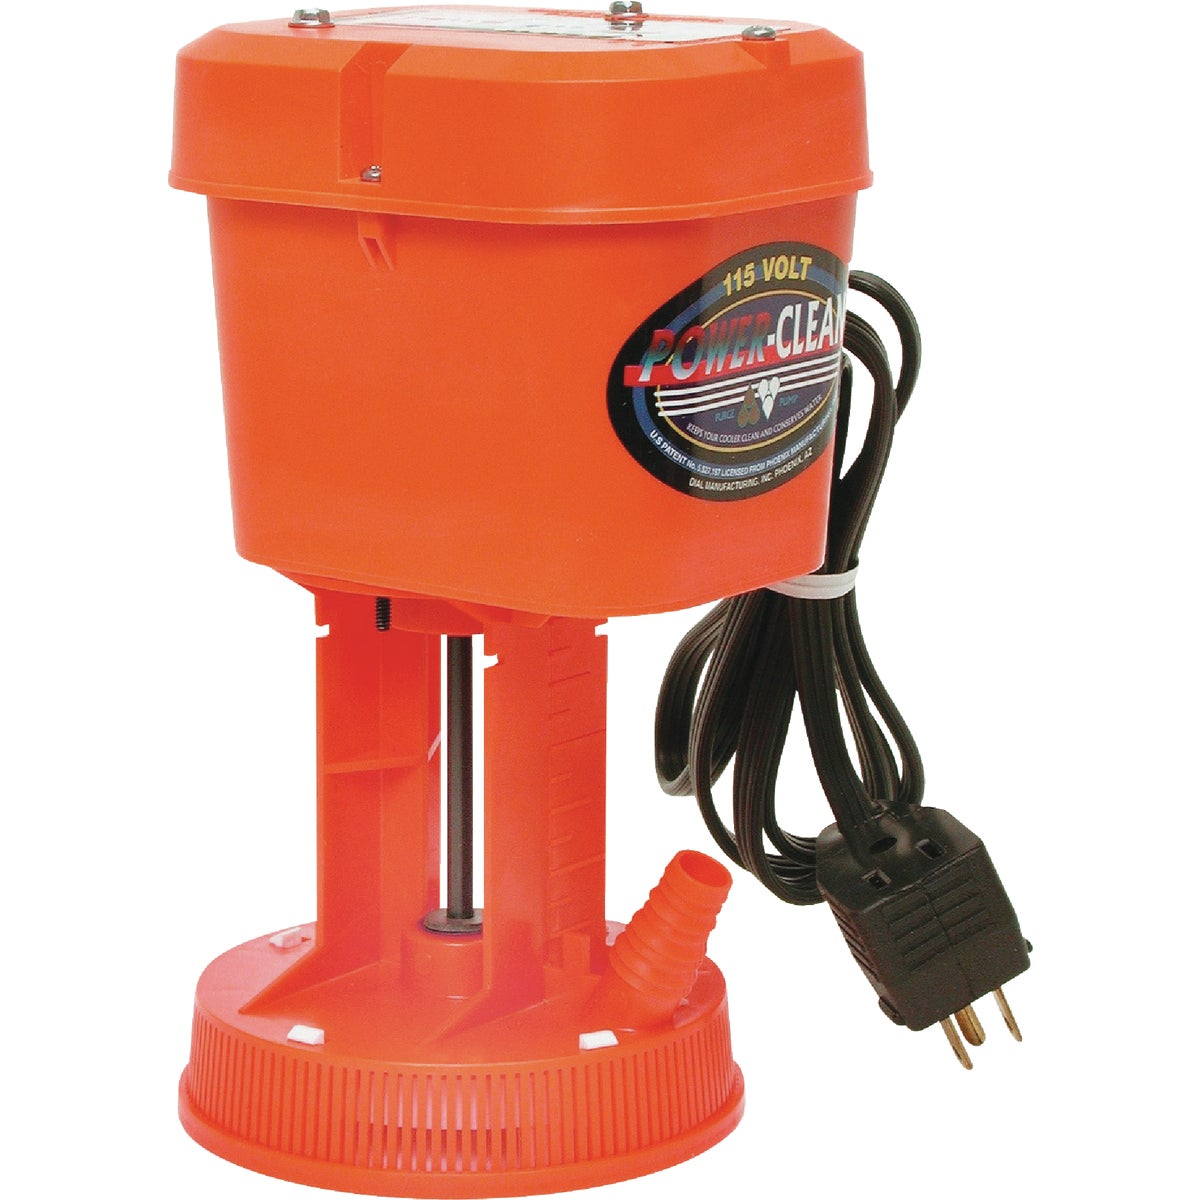 POWER CLEAN PURGE PUMP - 1540 by Dial Manufacturing